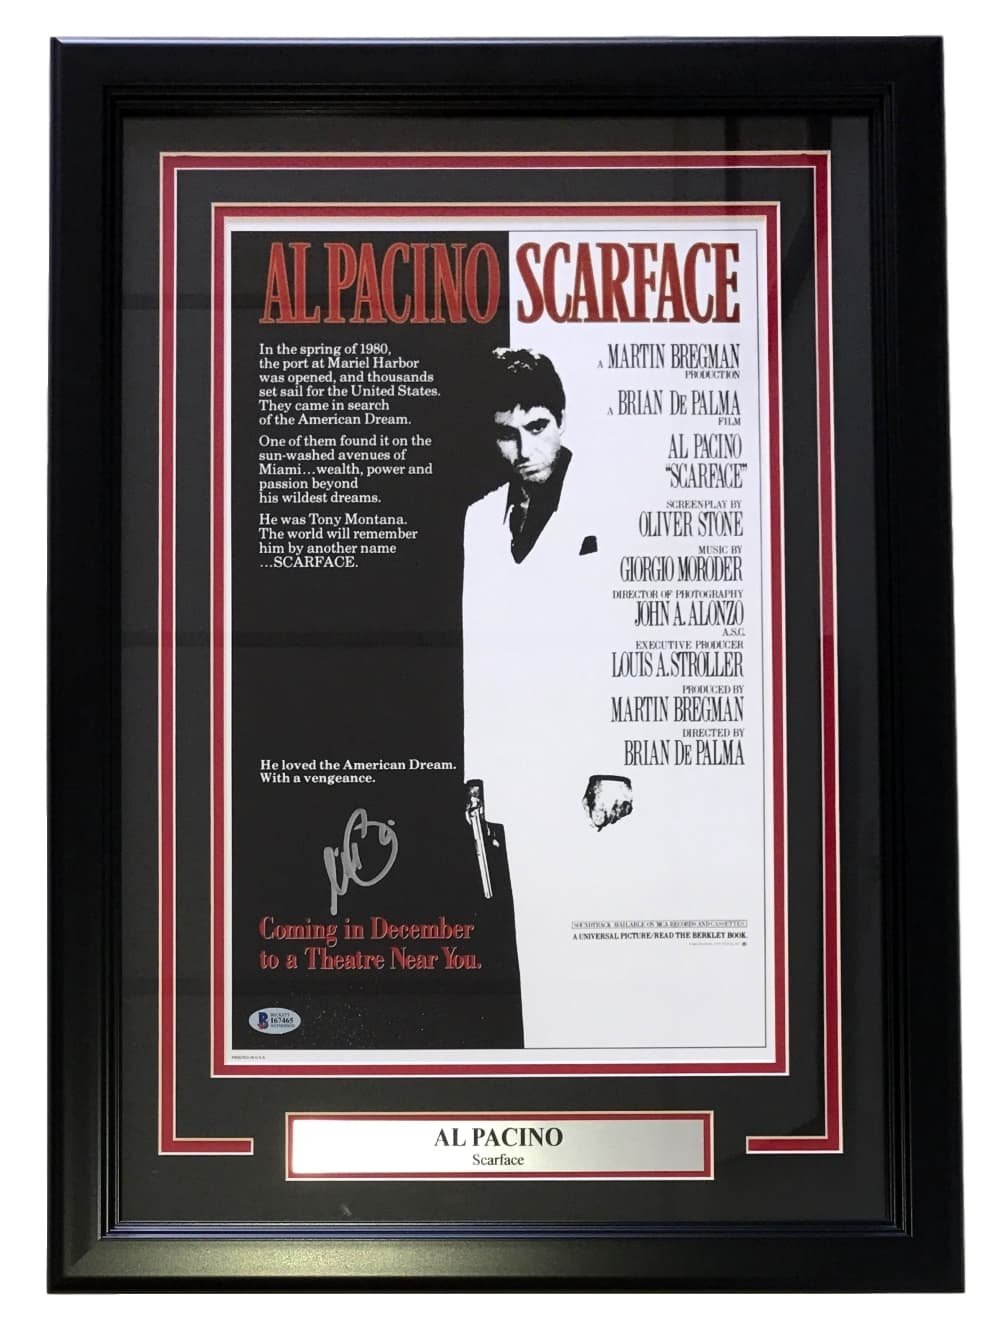 Al pacino signed framed scarface tony montana 17x24 movie poster al pacino signed framed scarface tony montana 17x24 movie poster beckett bas at amazons sports collectibles store jeuxipadfo Images